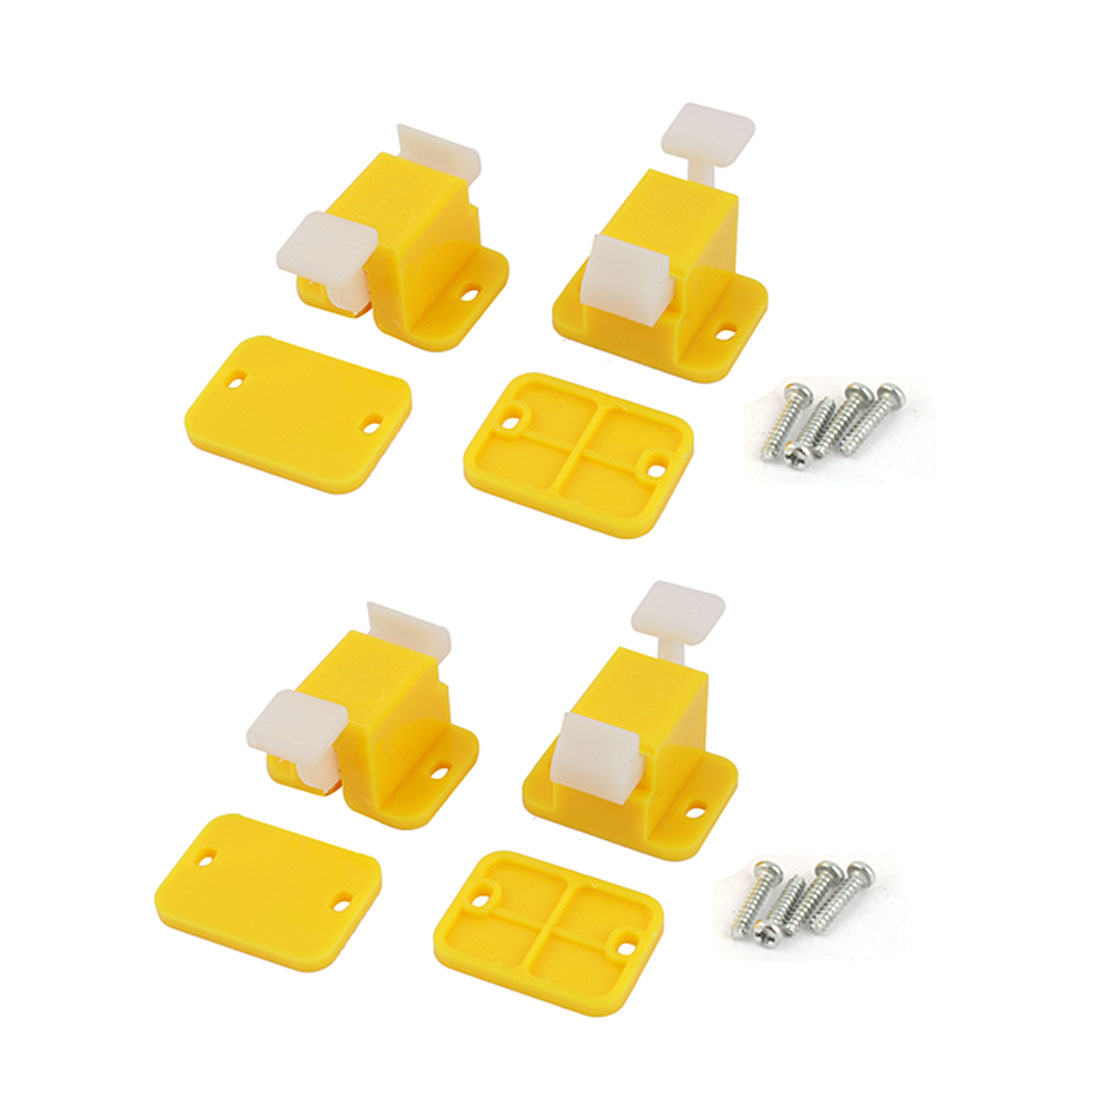 4 x Plastic Prototype Test Fixture Jig Yellow White for PCB Board